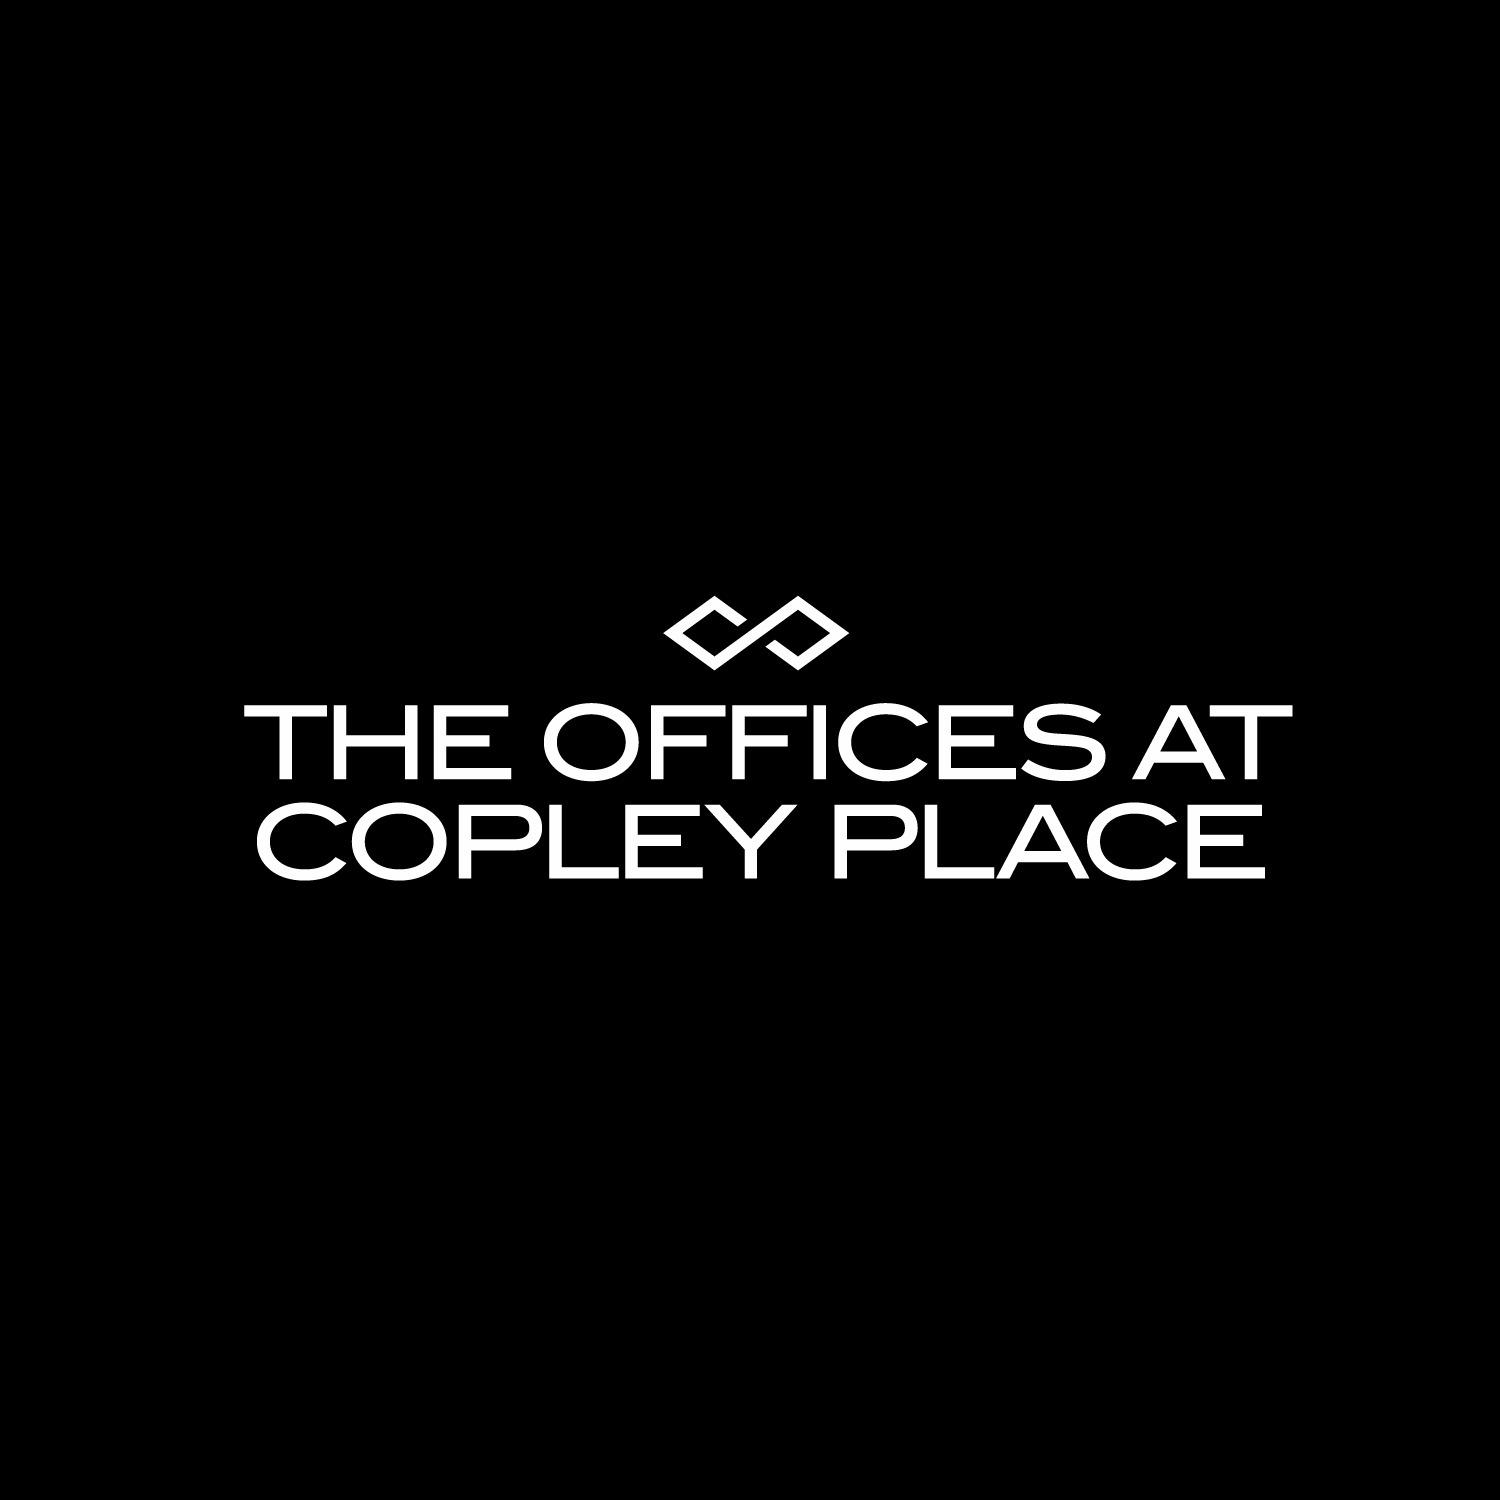 The Offices at Copley Place